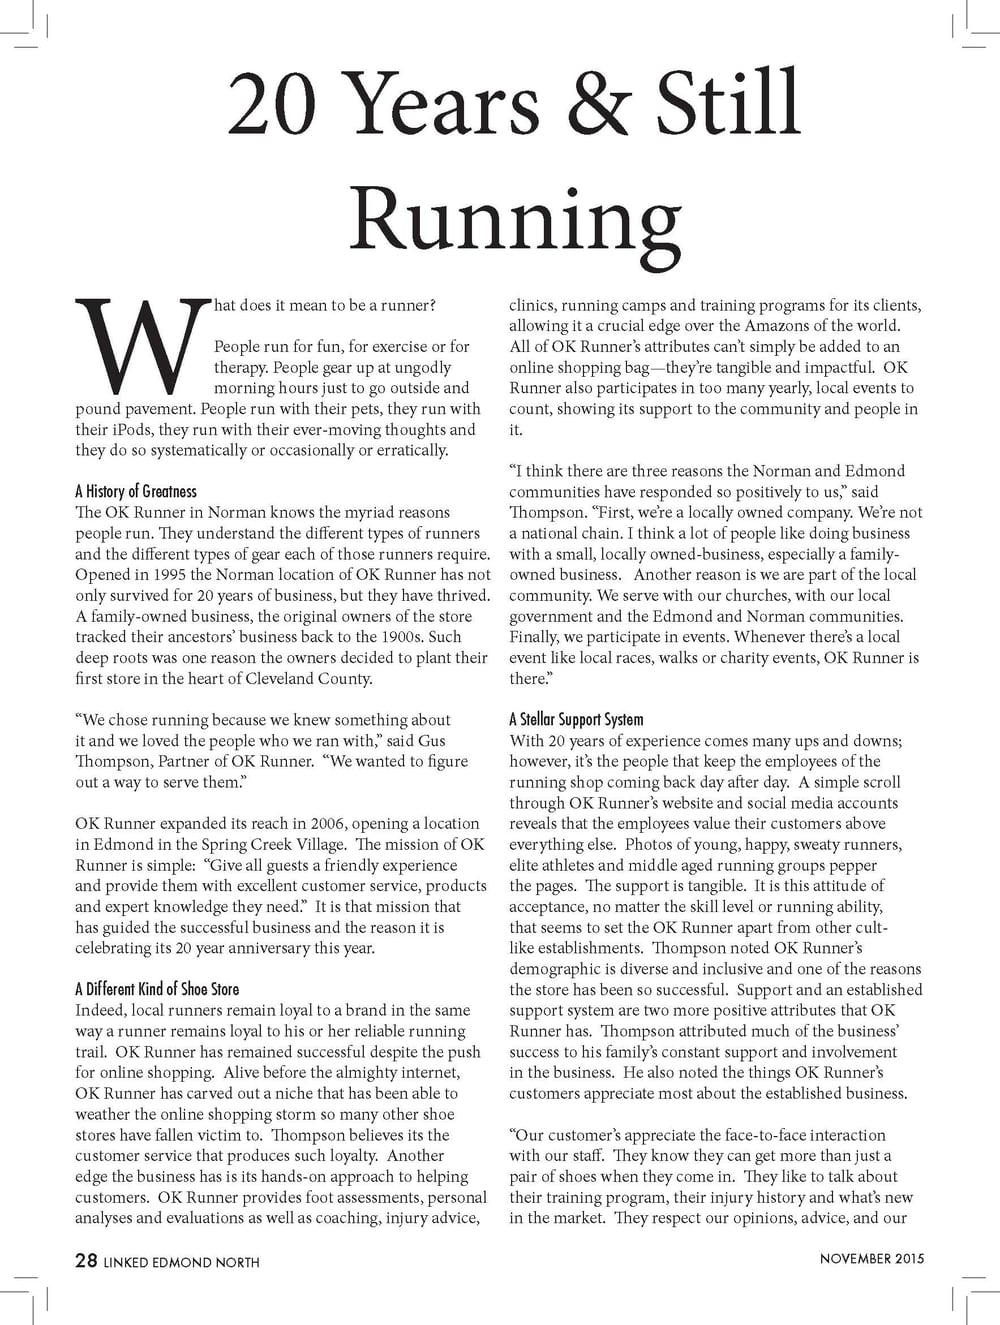 """What does it mean to be a runner?  People run for fun, for exercise or for  therapy. People gear up at ungodly  morning hours just to go outside and  pound pavement. People run with their pets, they run with  their iPods, they run with their ever-moving thoughts and  they do so systematically or occasionally or erratically.  A History of Greatness  The OK Runner in Norman knows the myriad reasons  people run. They understand the different types of runners  and the different types of gear each of those runners require.  Opened in 1995 the Norman location of OK Runner has not  only survived for 20 years of business, but they have thrived.  A family-owned business, the original owners of the store  tracked their ancestors' business back to the 1900s. Such  deep roots was one reason the owners decided to plant their  first store in the heart of Cleveland County.  """"We chose running because we knew something about  it and we loved the people who we ran with,"""" said Gus  Thompson, Partner of OK Runner. """"We wanted to figure  out a way to serve them.""""  OK Runner expanded its reach in 2006, opening a location  in Edmond in the Spring Creek Village. The mission of OK  Runner is simple: """"Give all guests a friendly experience  and provide them with excellent customer service, products  and expert knowledge they need."""" It is that mission that  has guided the successful business and the reason it is  celebrating its 20 year anniversary this year.  A Different Kind of Shoe Store  Indeed, local runners remain loyal to a brand in the same  way a runner remains loyal to his or her reliable running  trail. OK Runner has remained successful despite the push  for online shopping. Alive before the almighty internet,  OK Runner has carved out a niche that has been able to  weather the online shopping storm so many other shoe  stores have fallen victim to. Thompson believes its the  customer service that produces such loyalty. Another  edge the business has is its hands-on approach to helpin"""